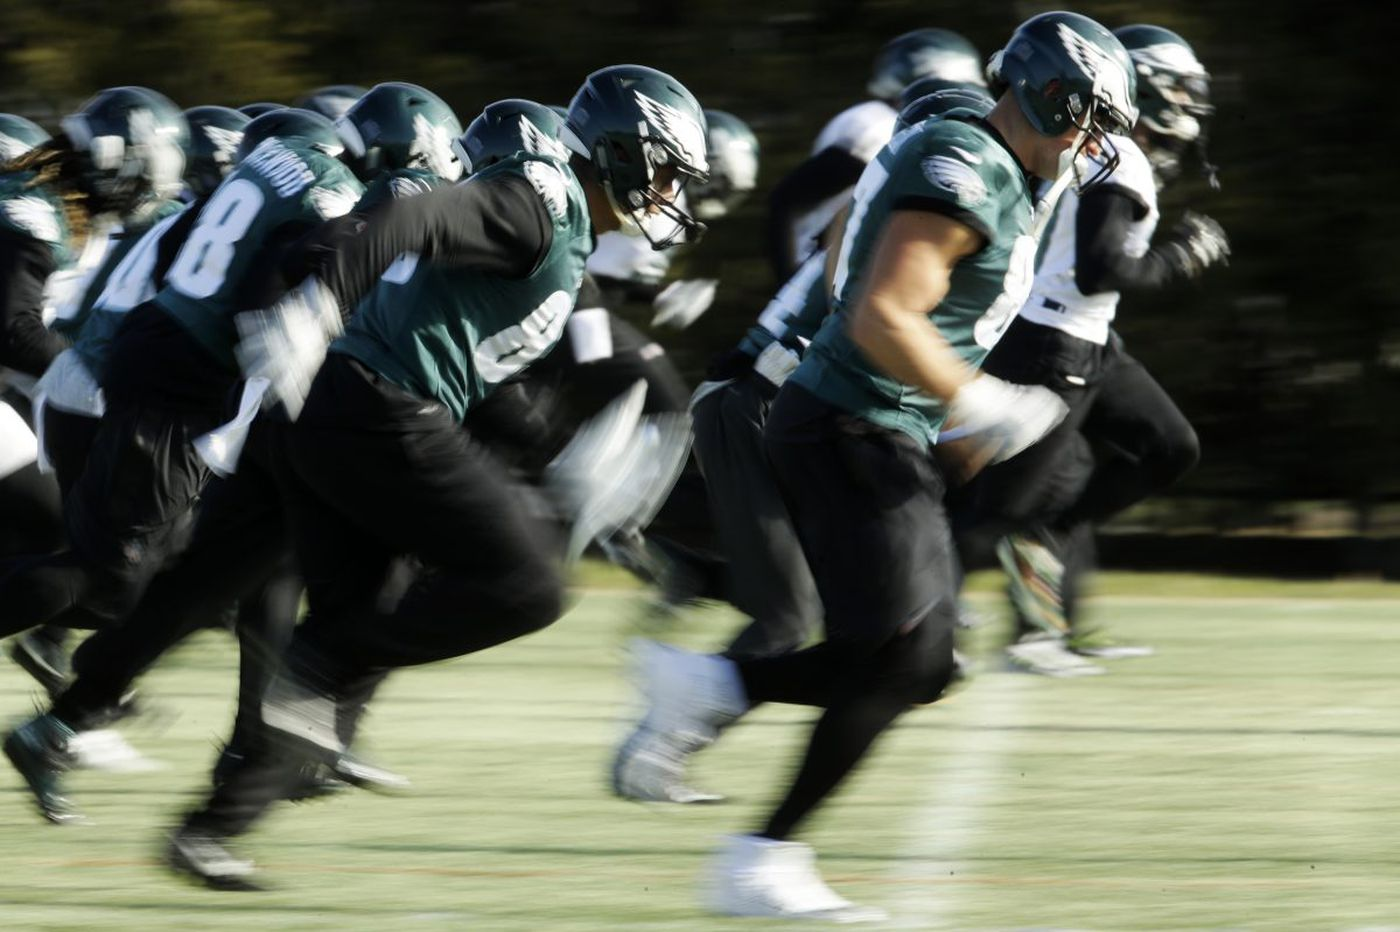 Eagles to hold physical postseason practices: 'This is something that the players want' | Early Birds